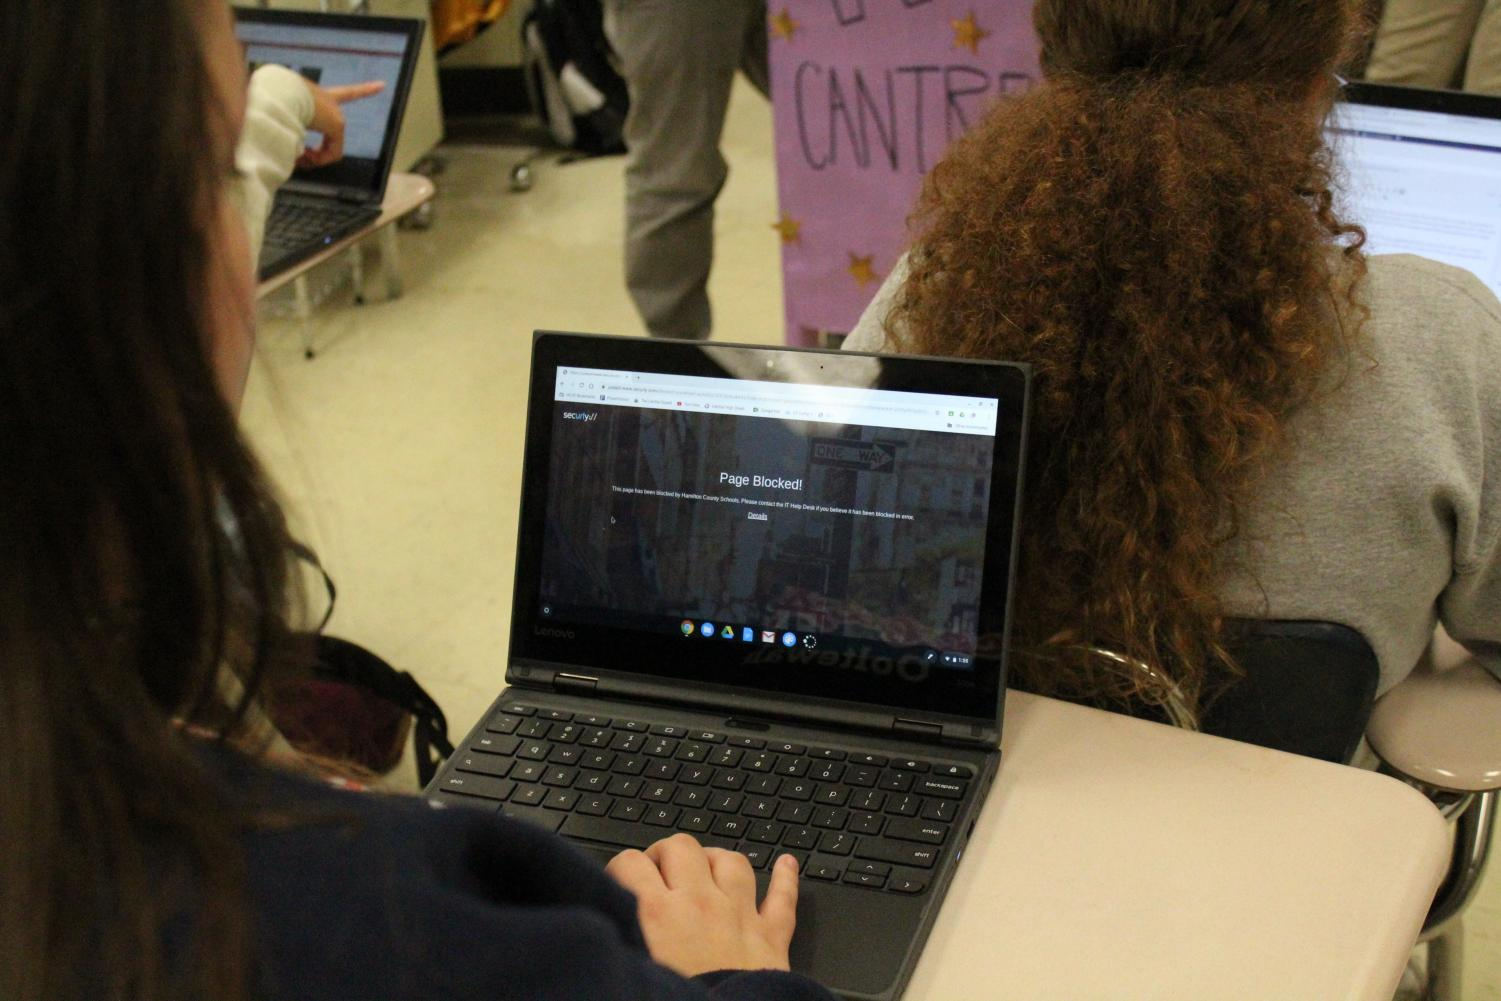 DO SCHOOL CHROMEBOOKS BLOCK MORE THAT NECESSARY? -- A school issued Chromebook blocks a student from accessing a certain website.